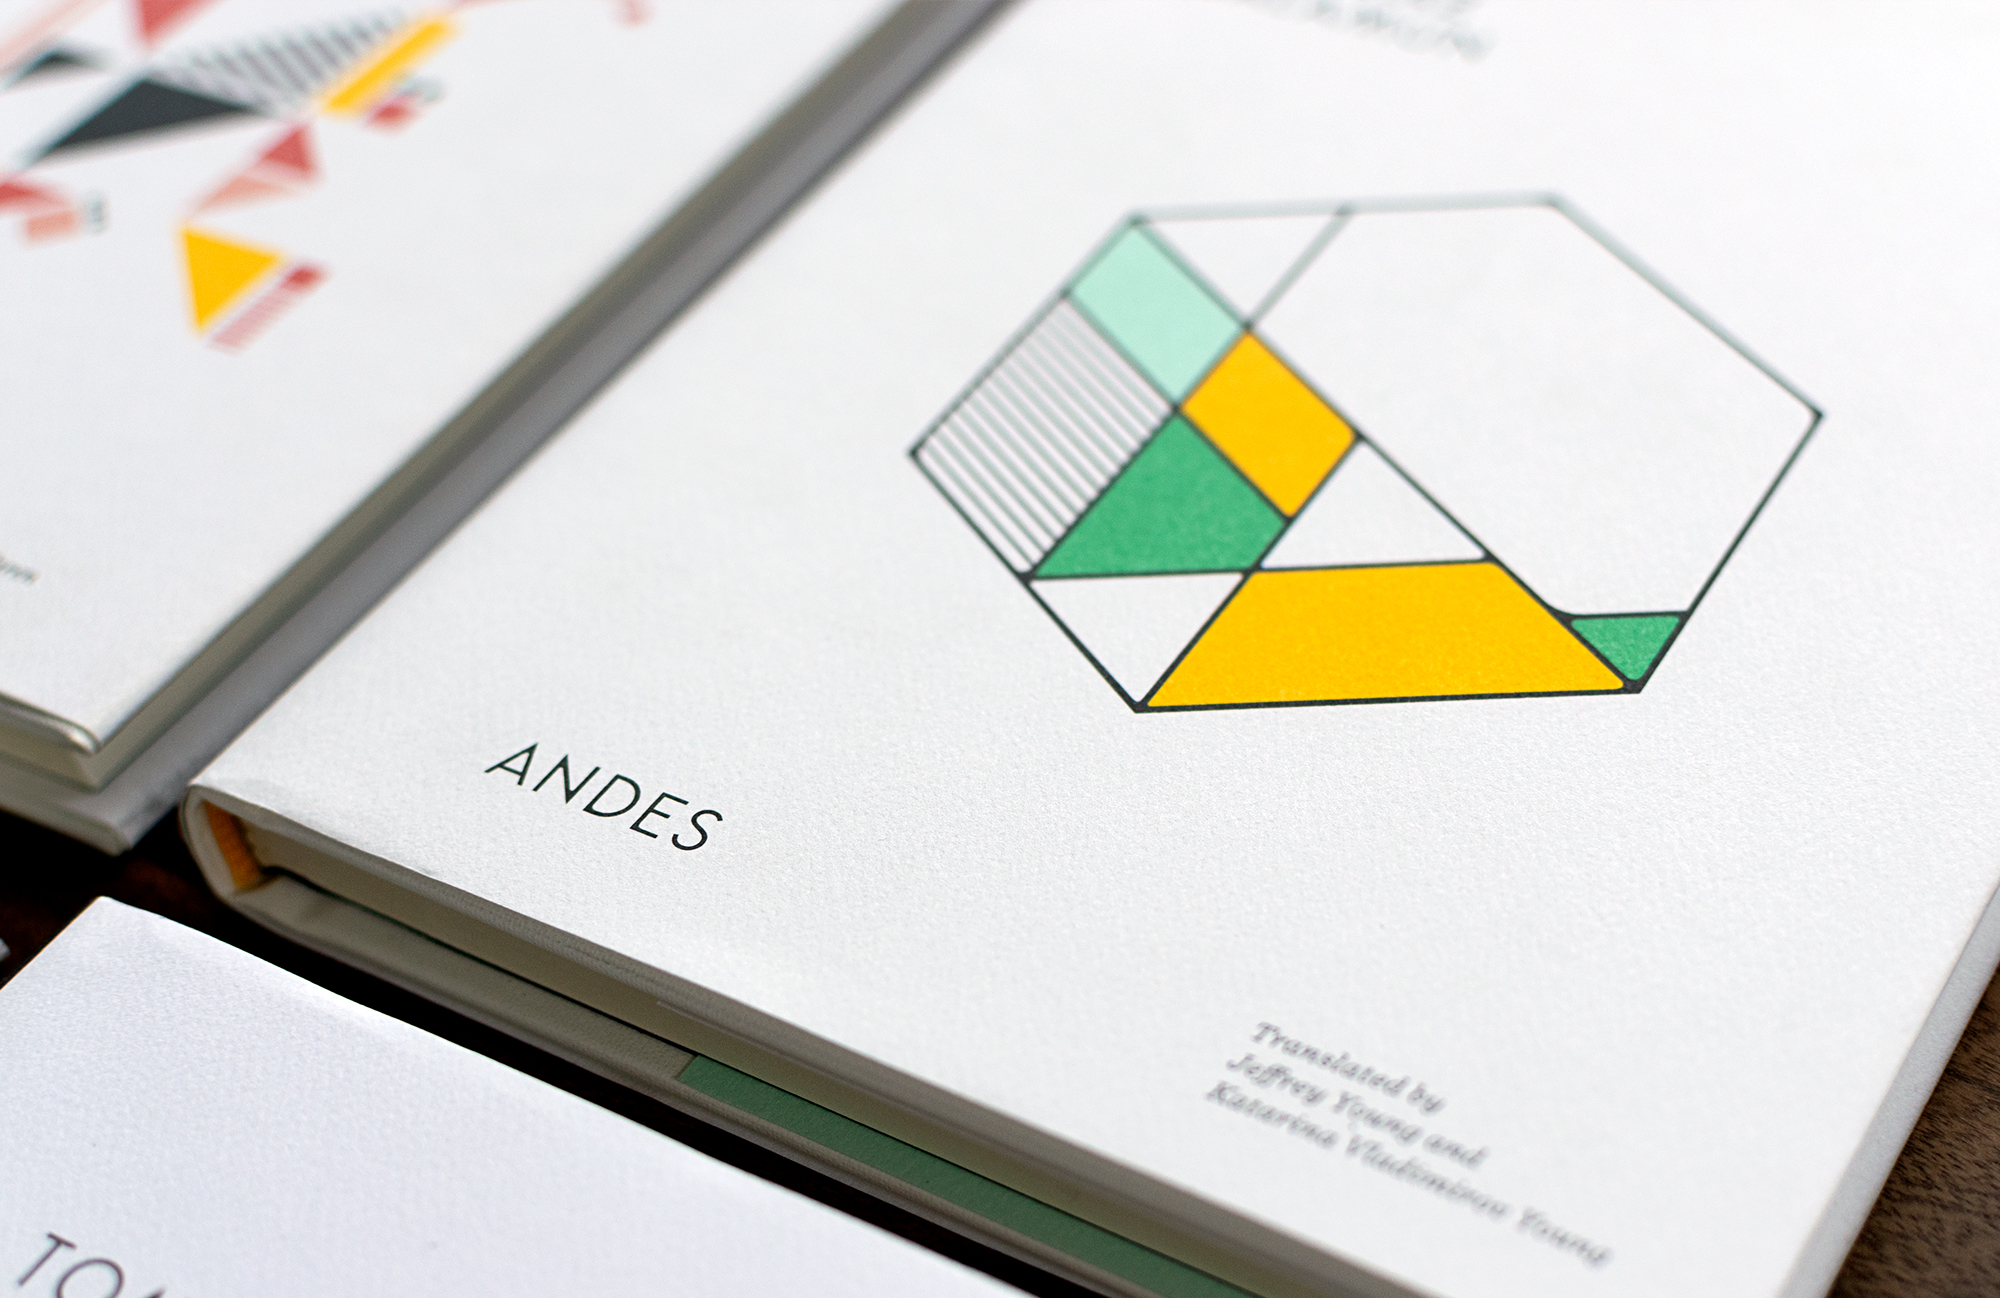 Detail of  Andes by Tomaz Salamun,. Book cover design, illustration, and custom typography by Abby Haddican Studio.